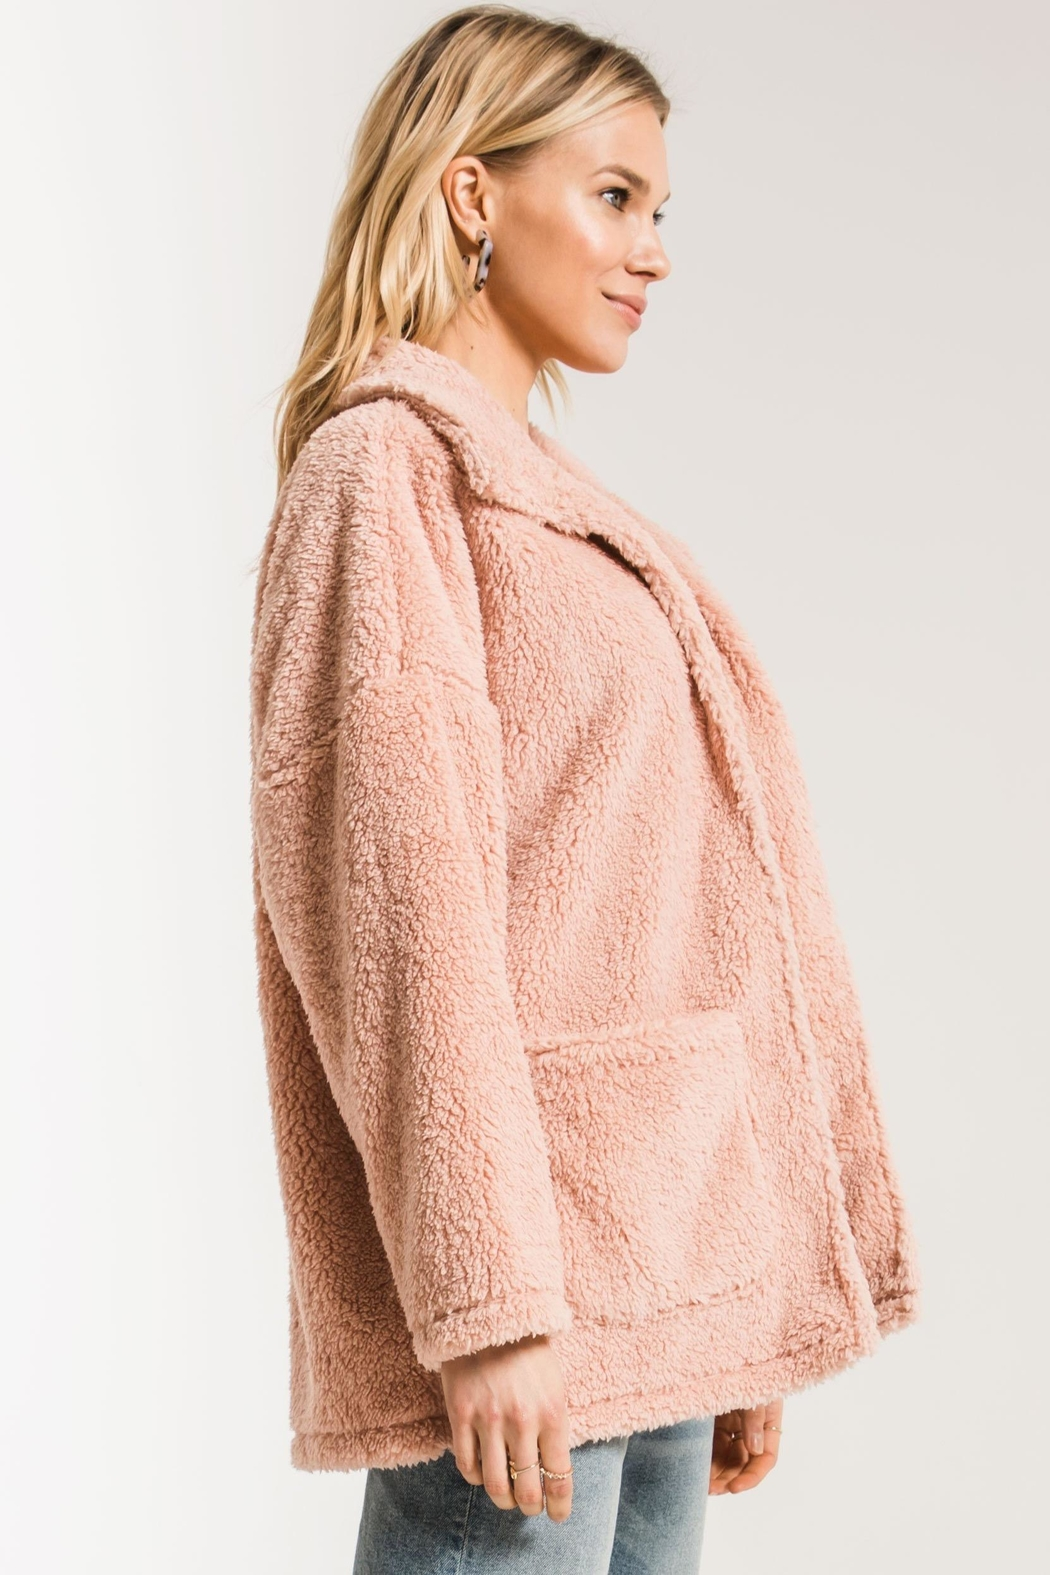 z supply Teddy Bear Coat - Side Cropped Image